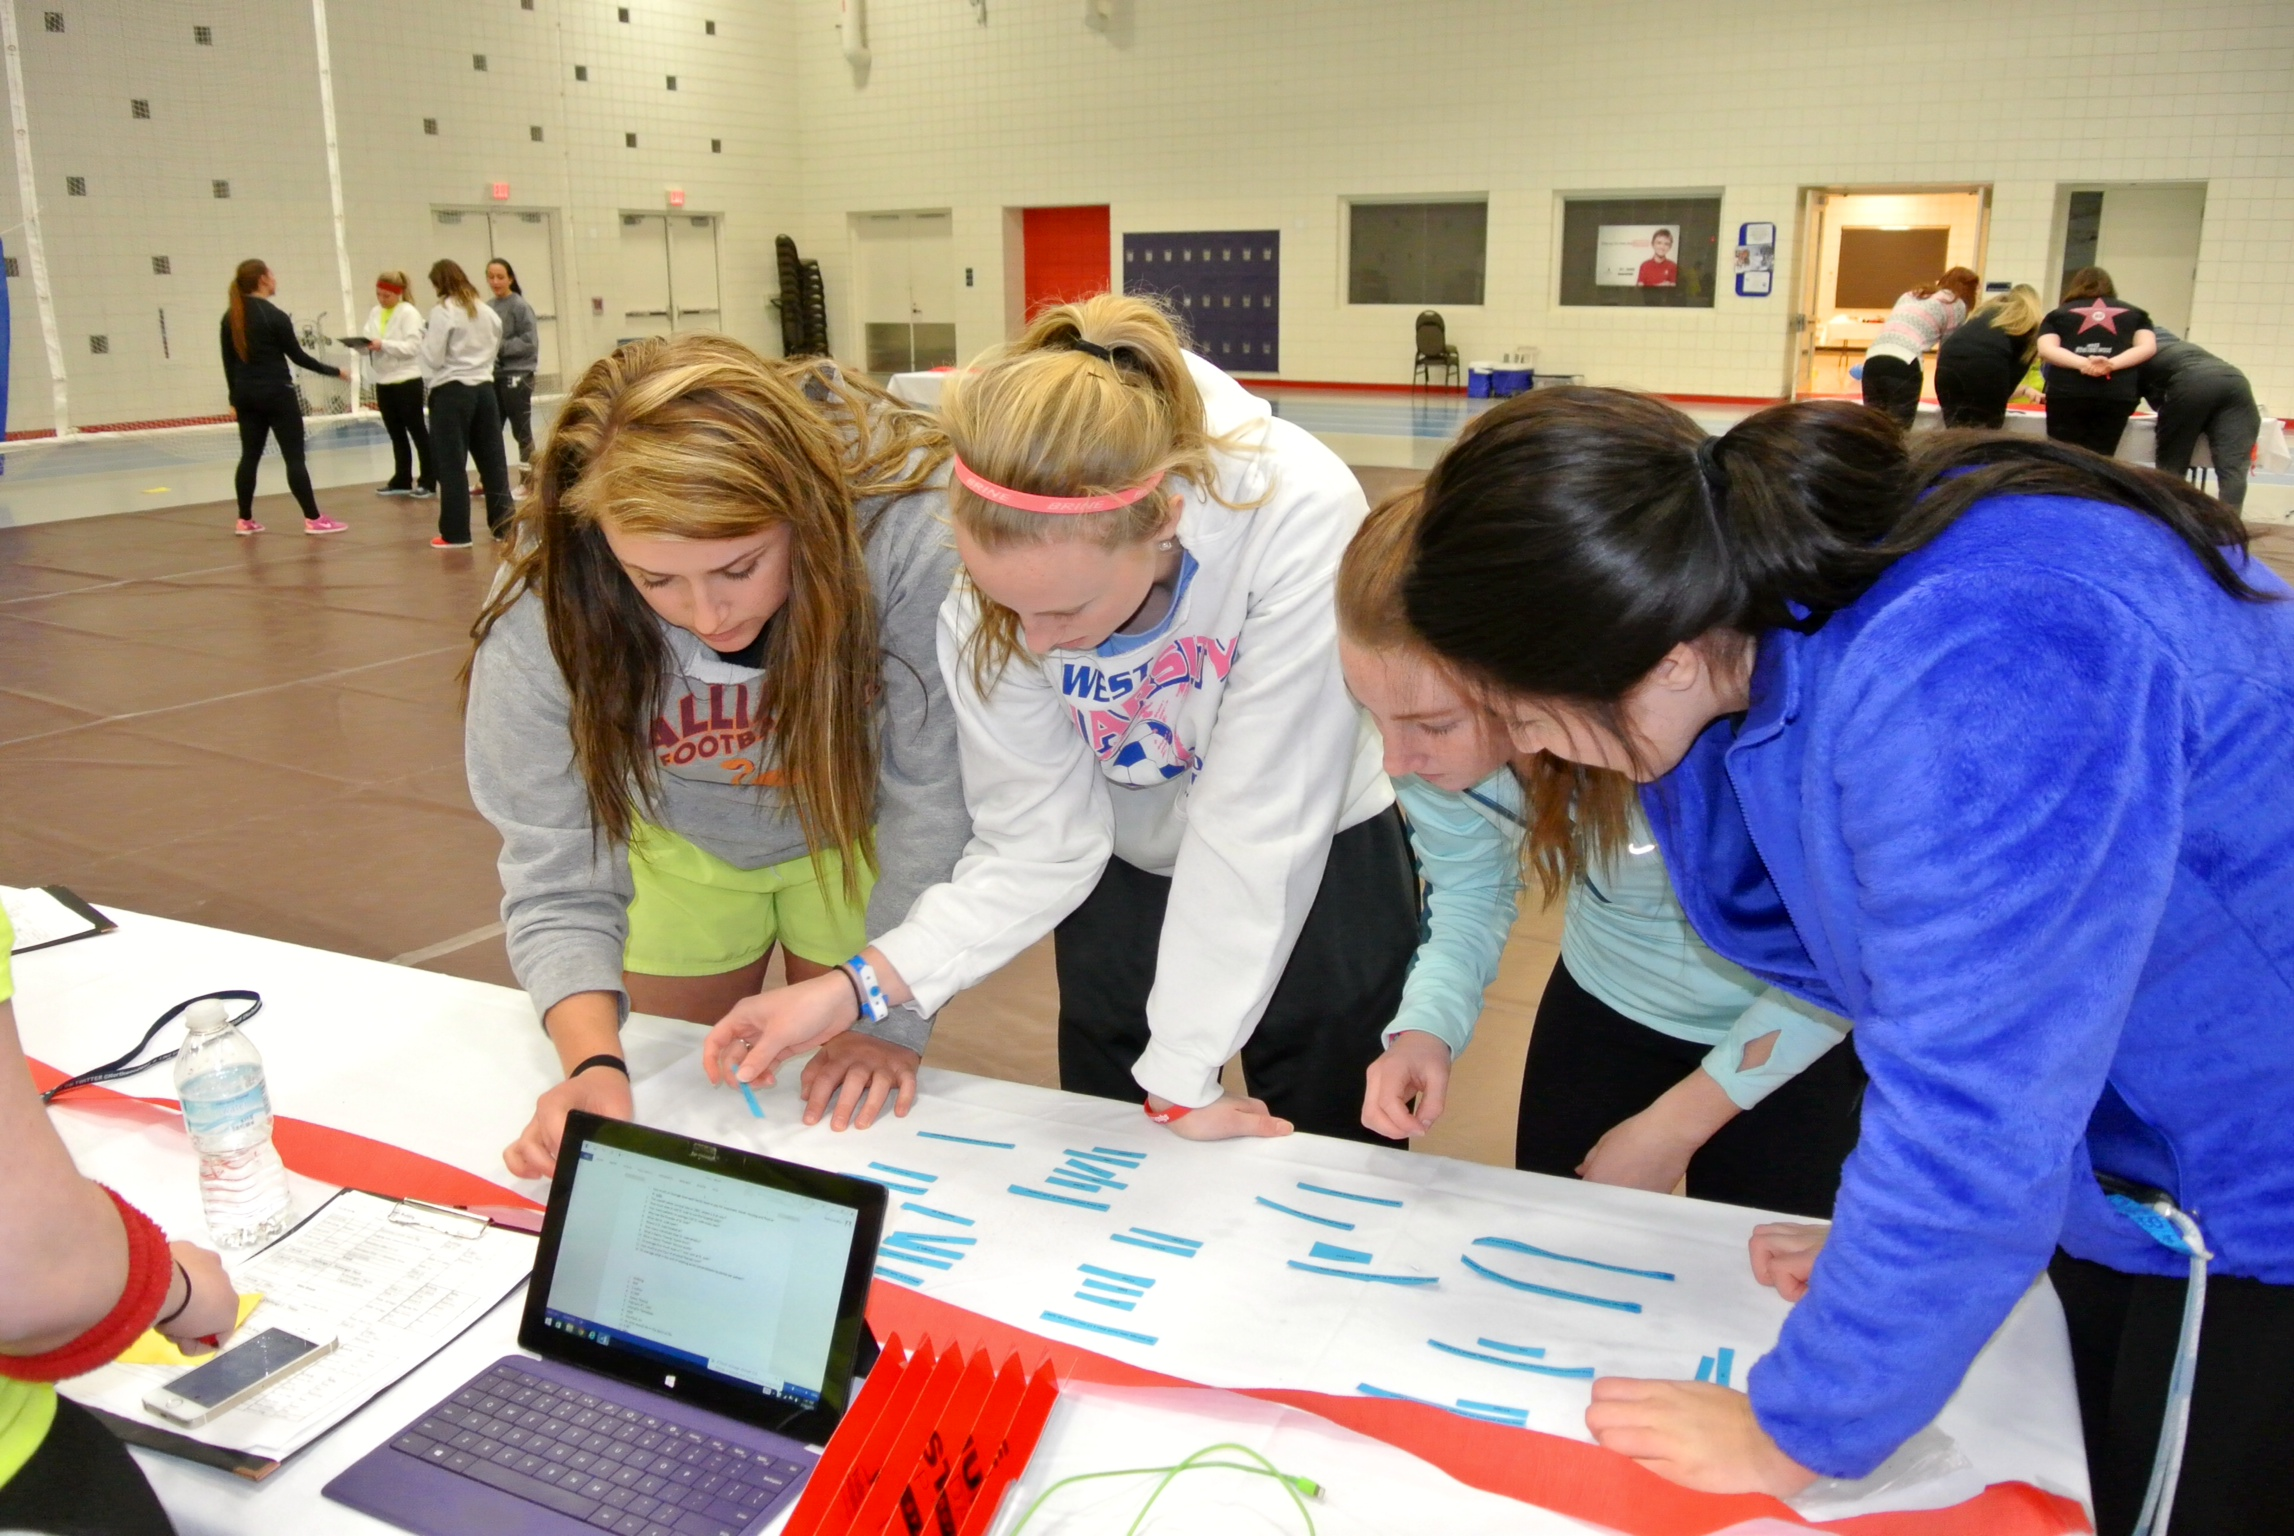 Northwood students Mckenzie Gohn, Shannon Brown, Savannah King and Haley Rusicka compete in the St. Jude  Trivia Challenge at the Up 'til Dawn event.